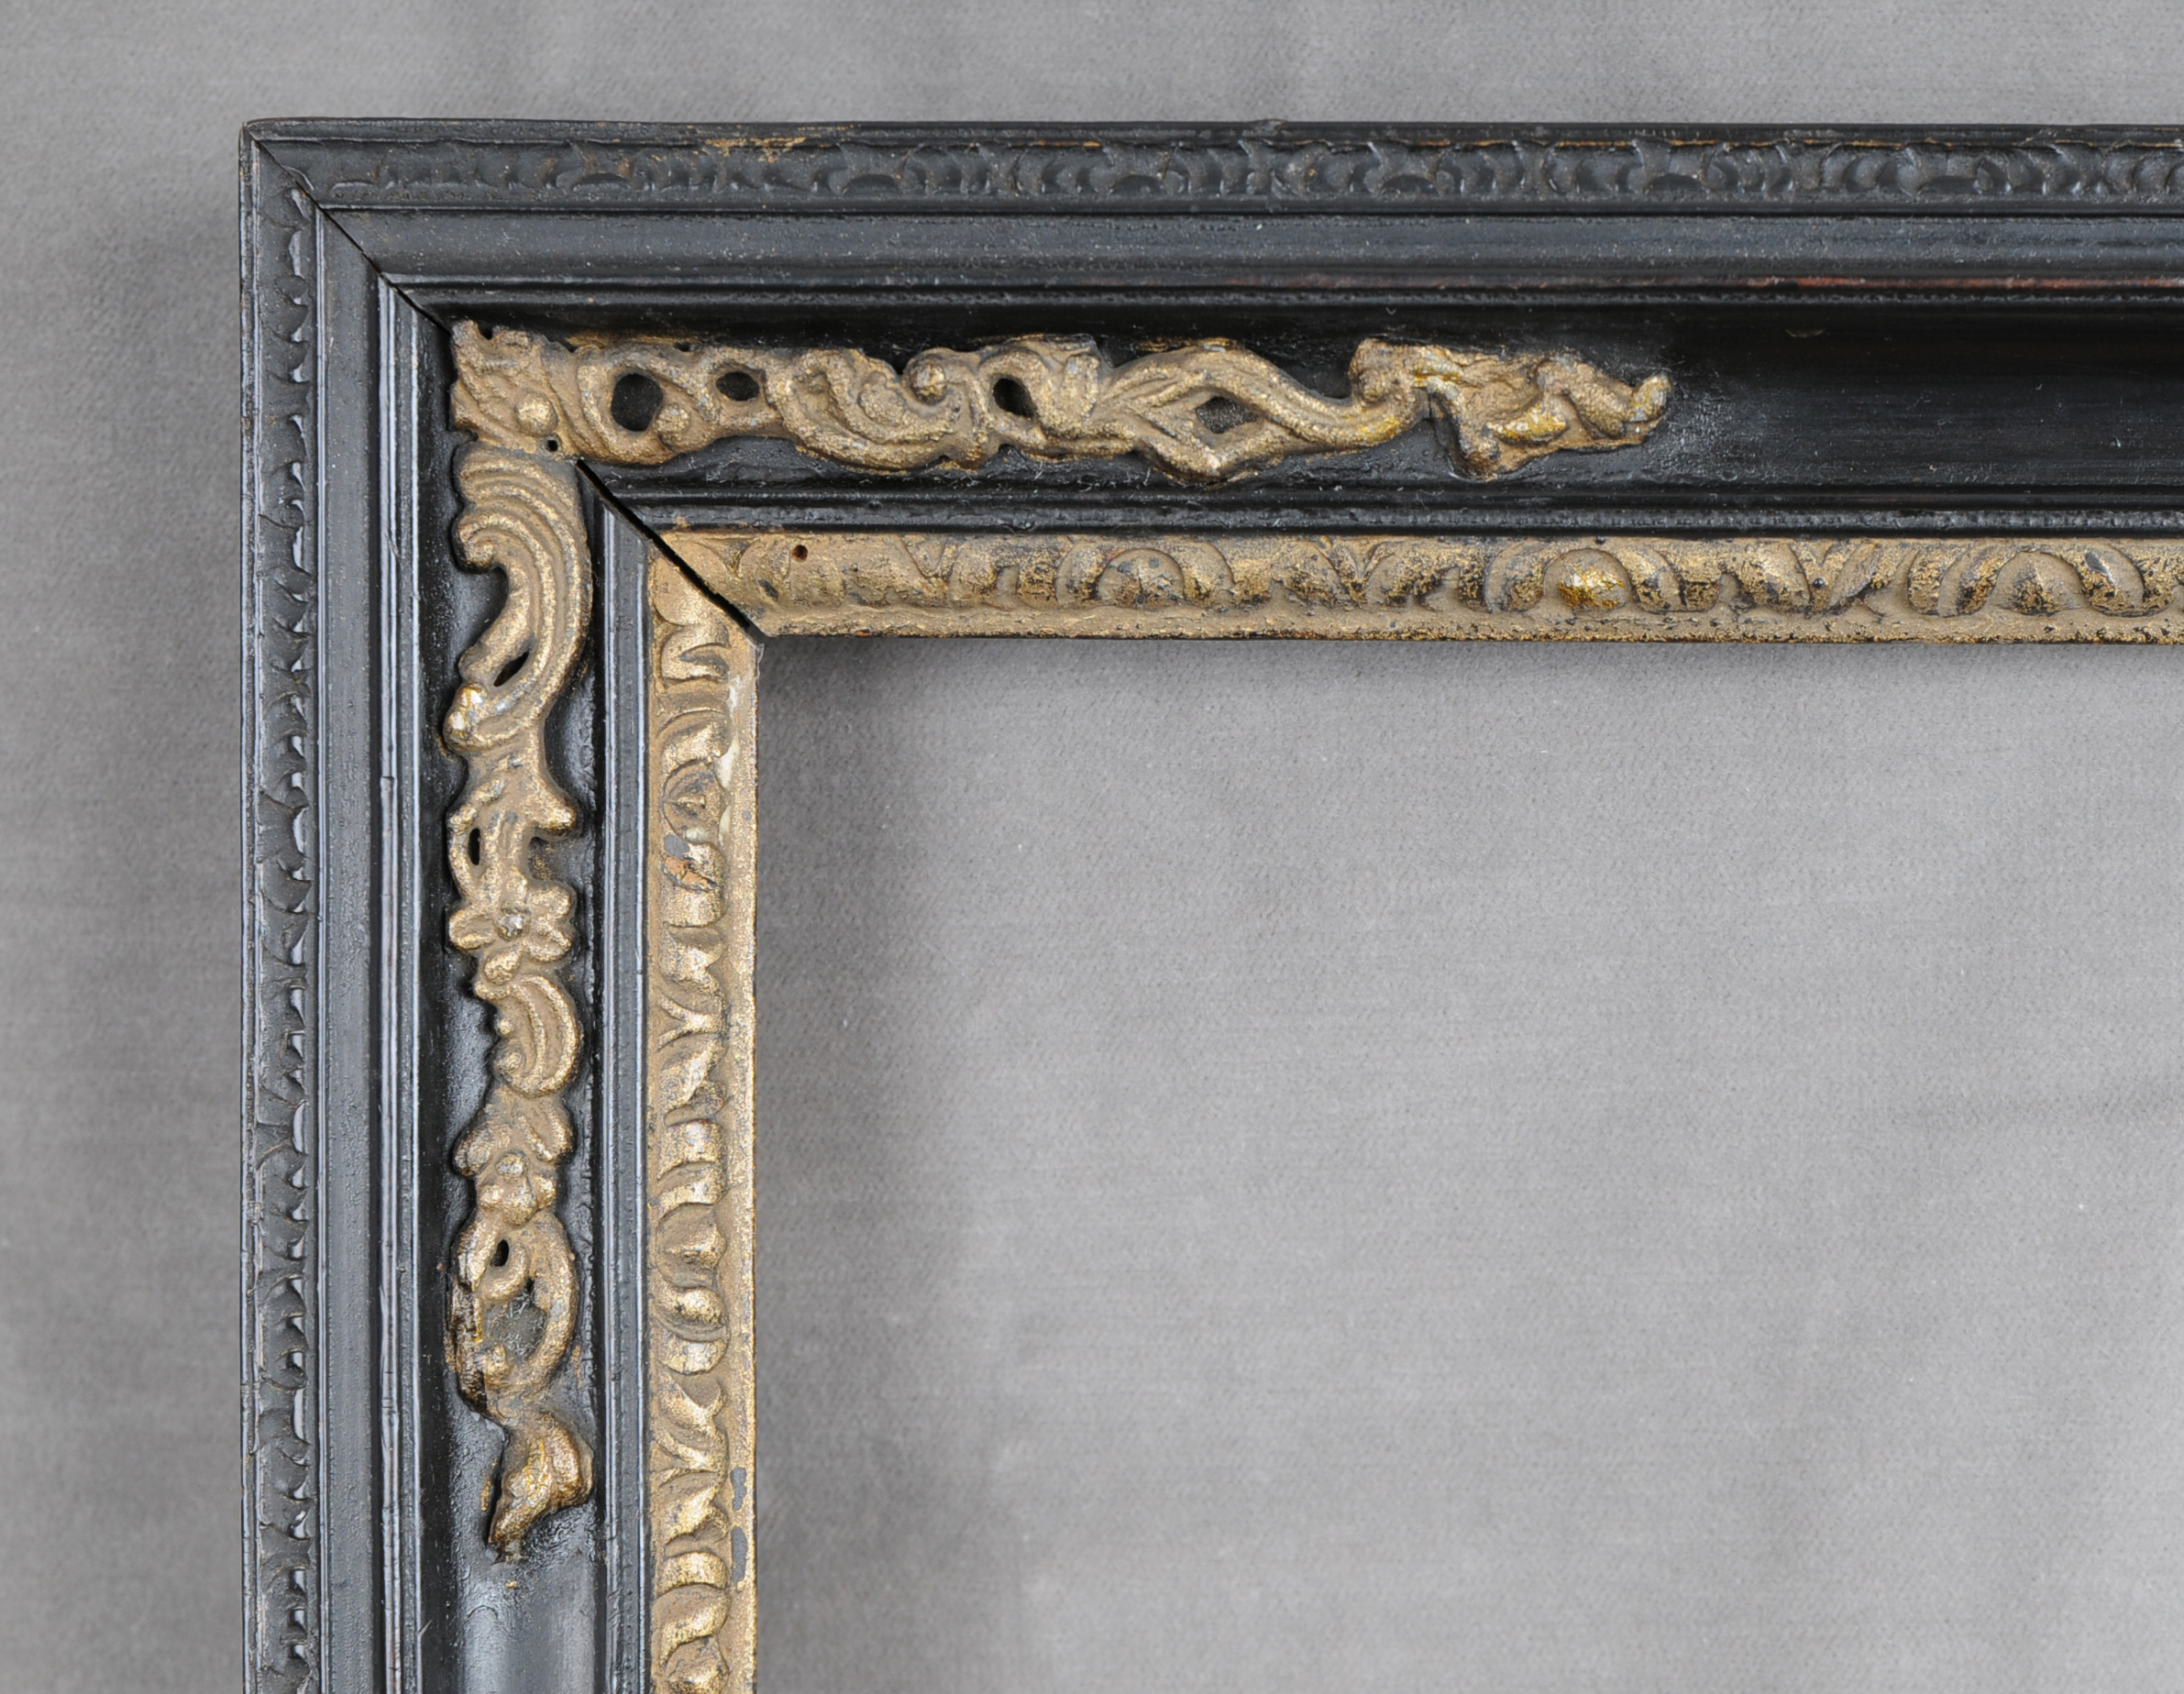 Eighteenth century Peartree frame with gilded lead corner ornament